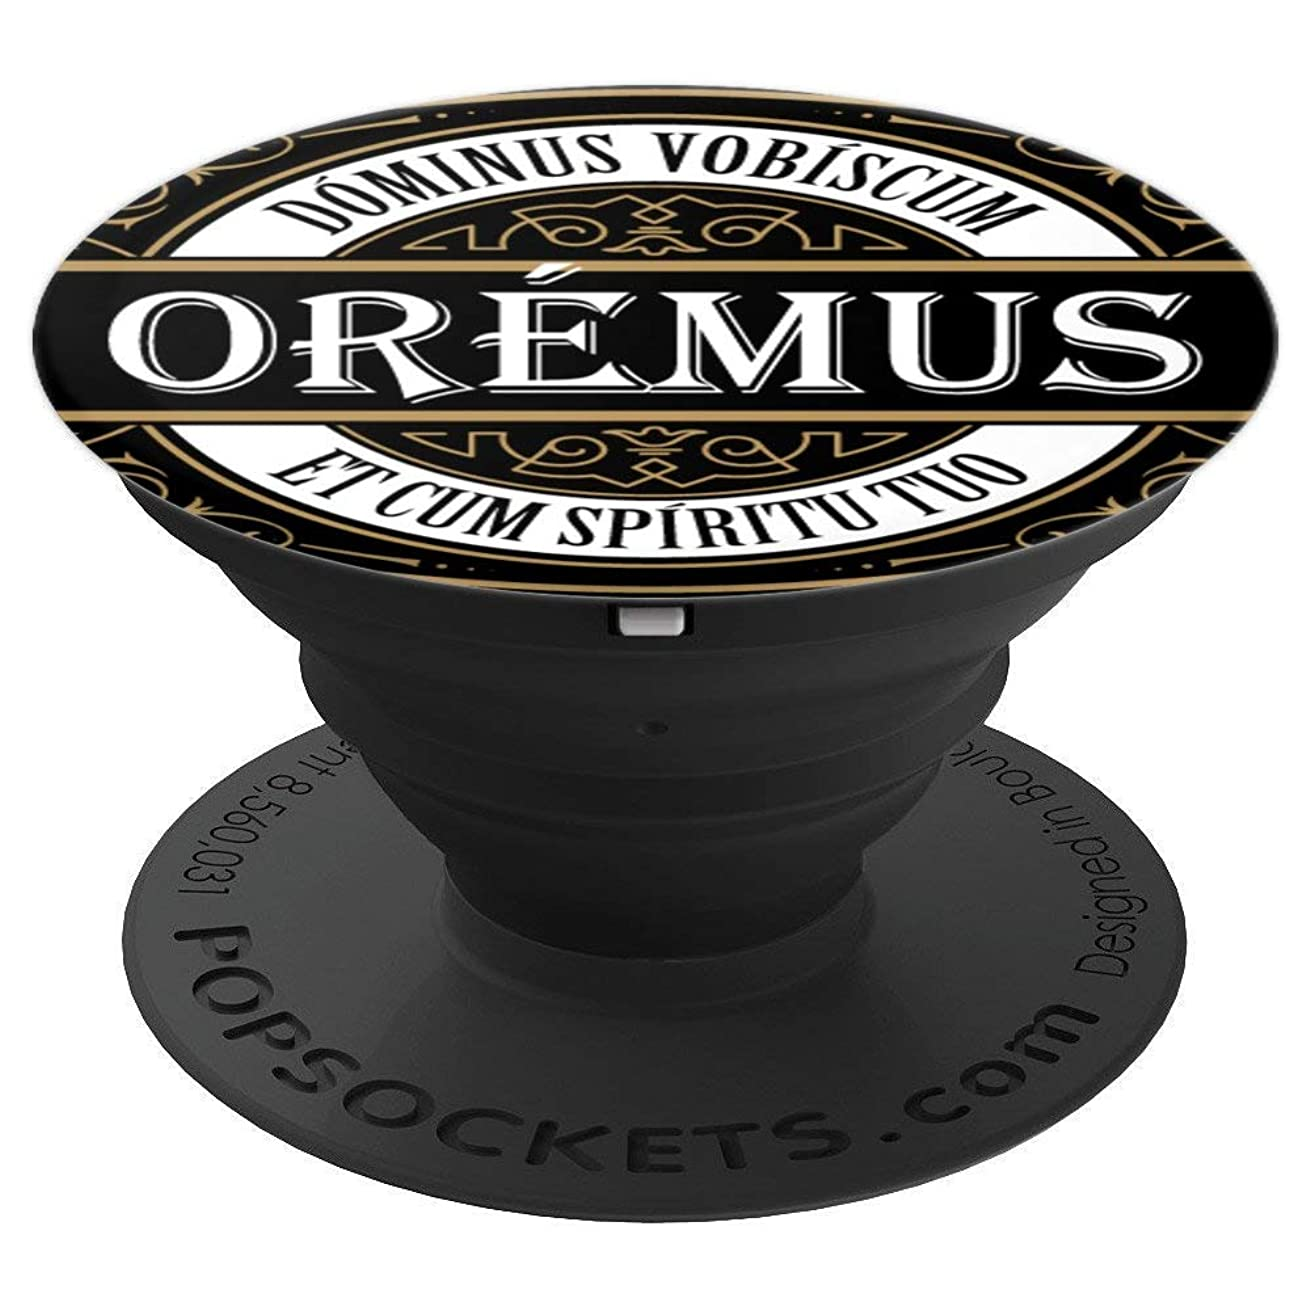 Traditional Latin Mass Oremus Dominus Catholic - PopSockets Grip and Stand for Phones and Tablets